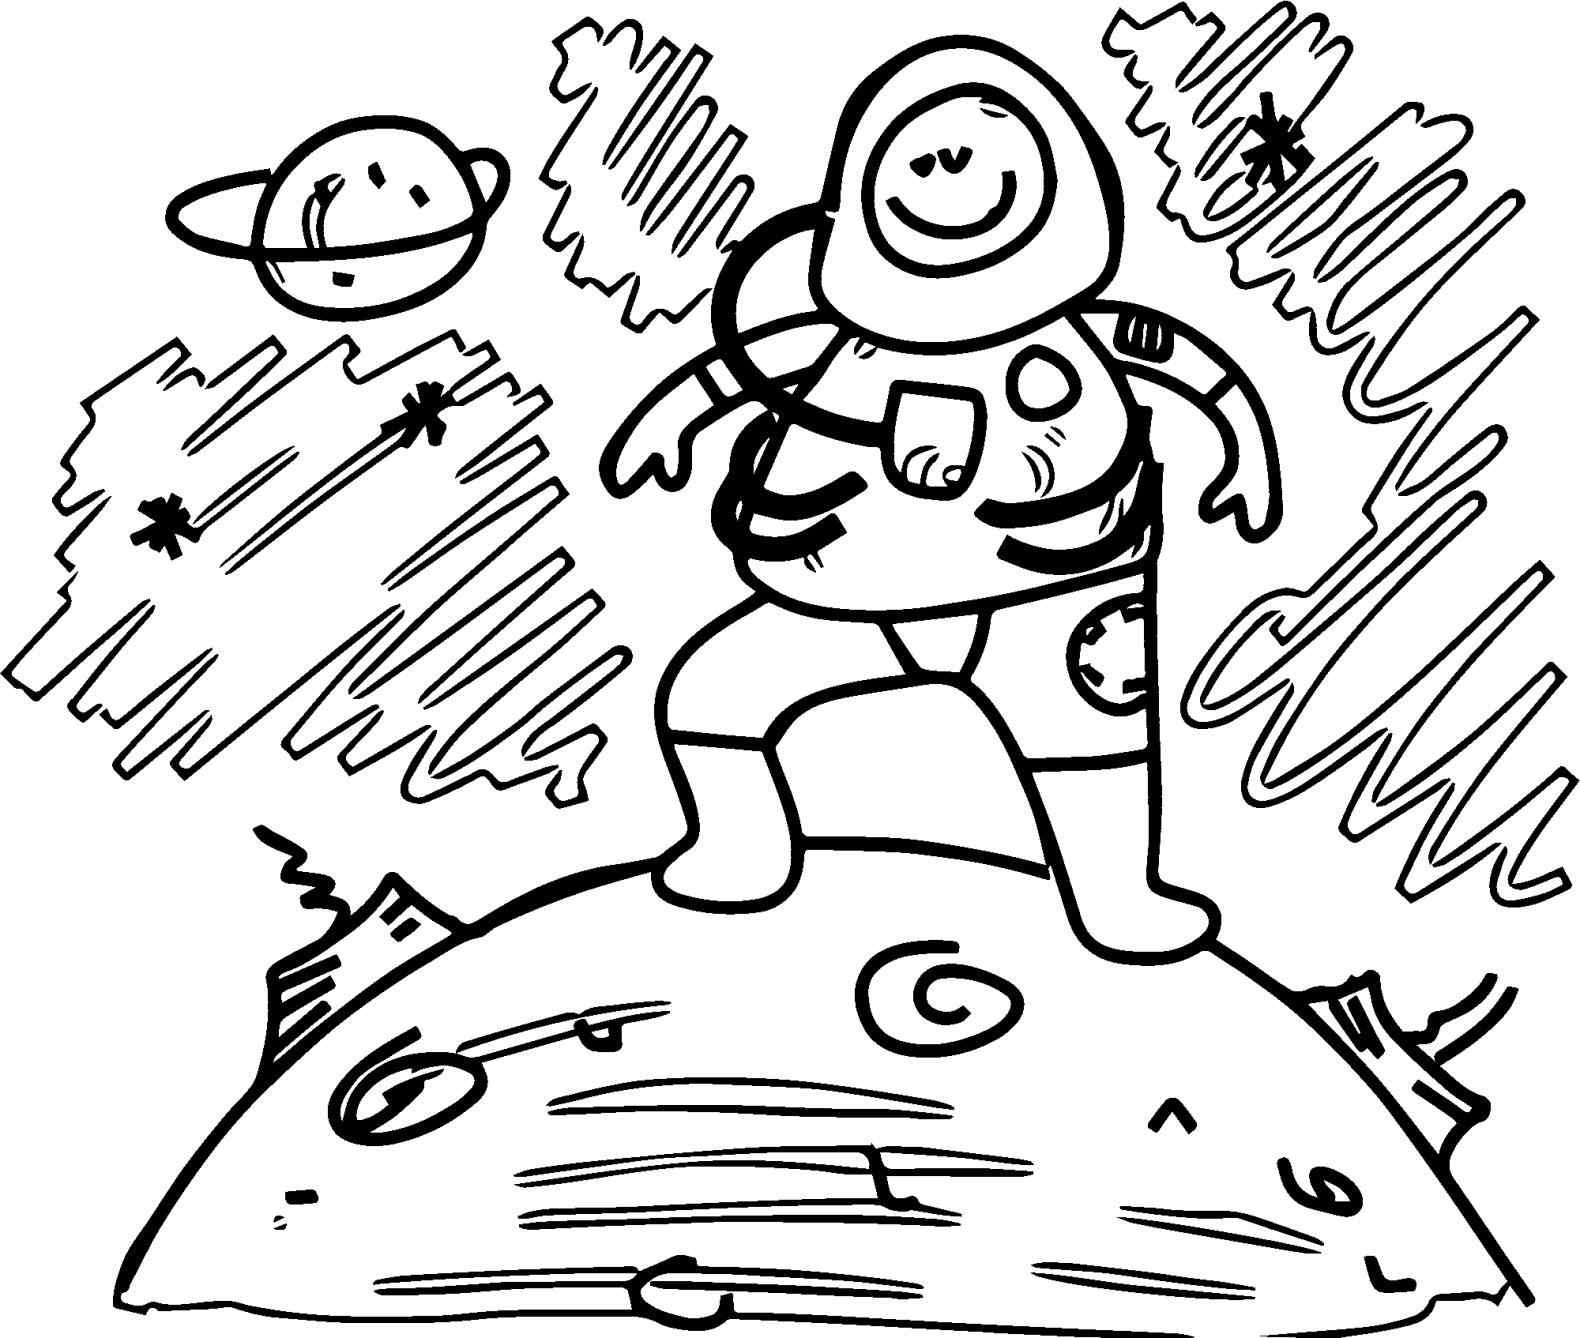 1580x1338 Astronaut On The Moon Coloring Pages With Us Flag For Kids New